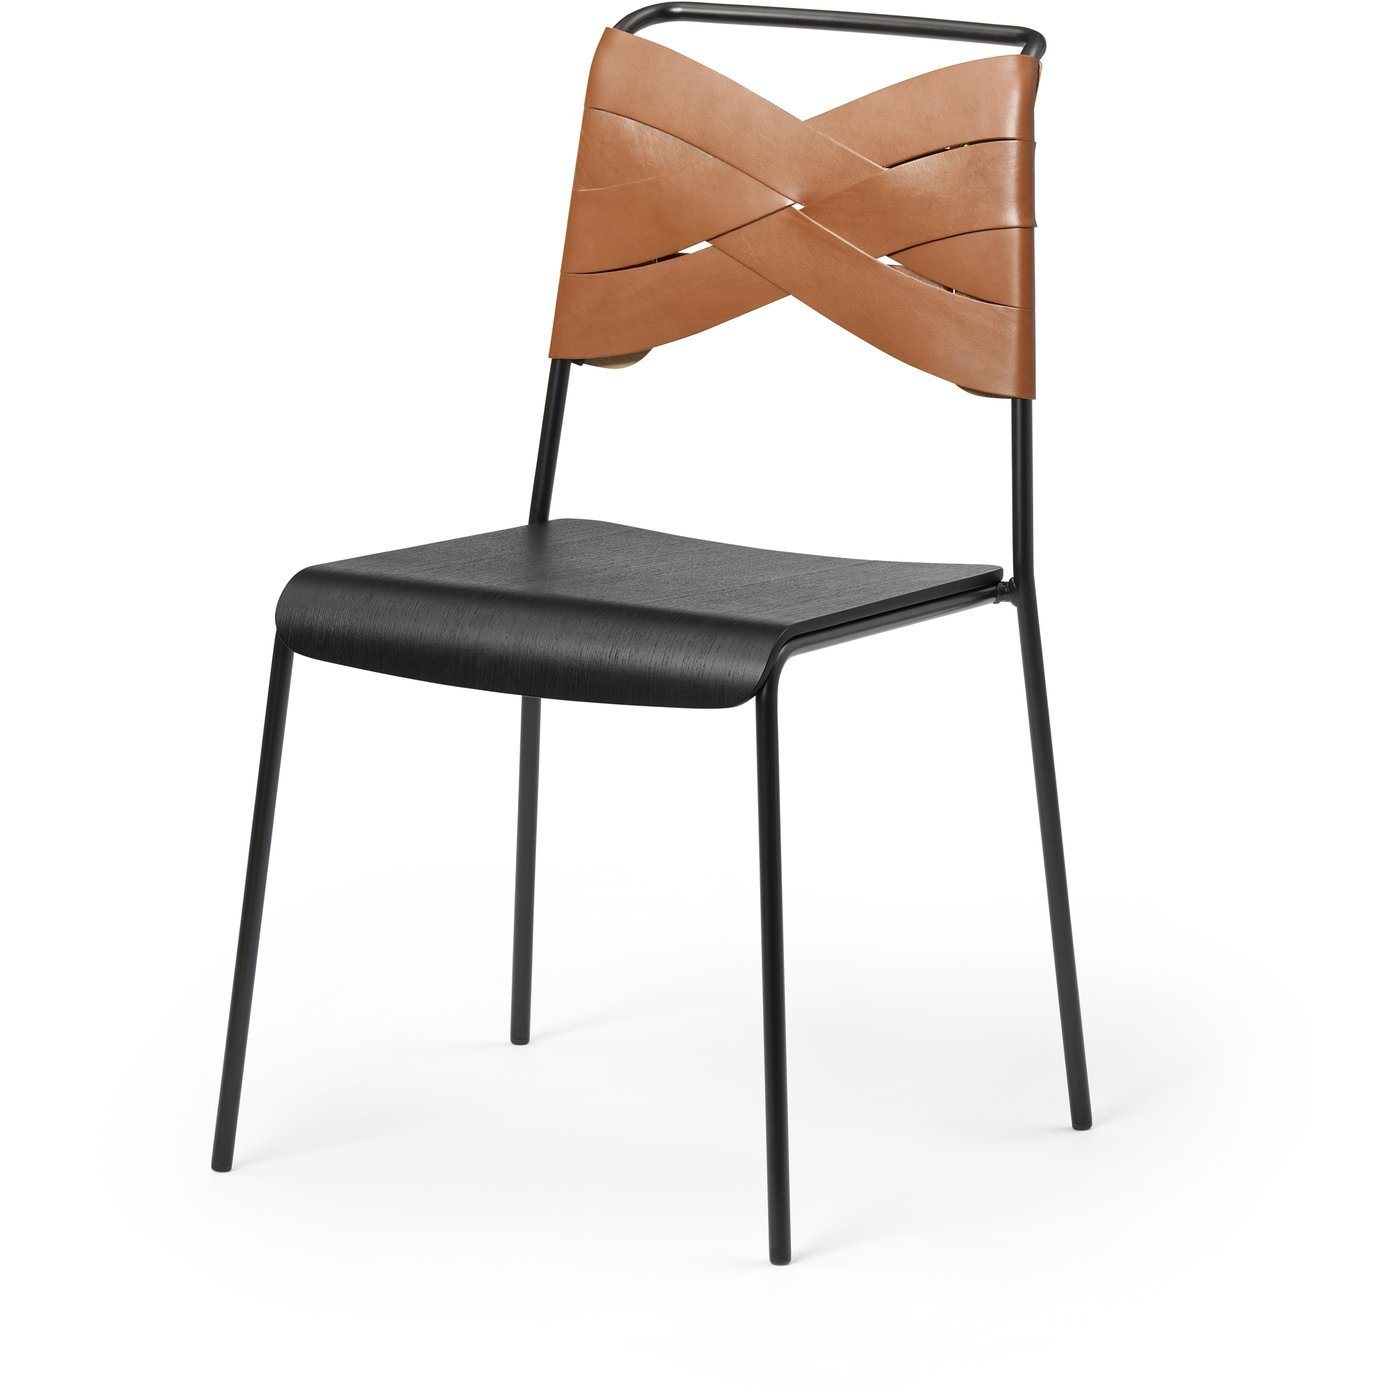 DESIGN HOUSE STOCKHOLM Torso Chair Black Black/Black